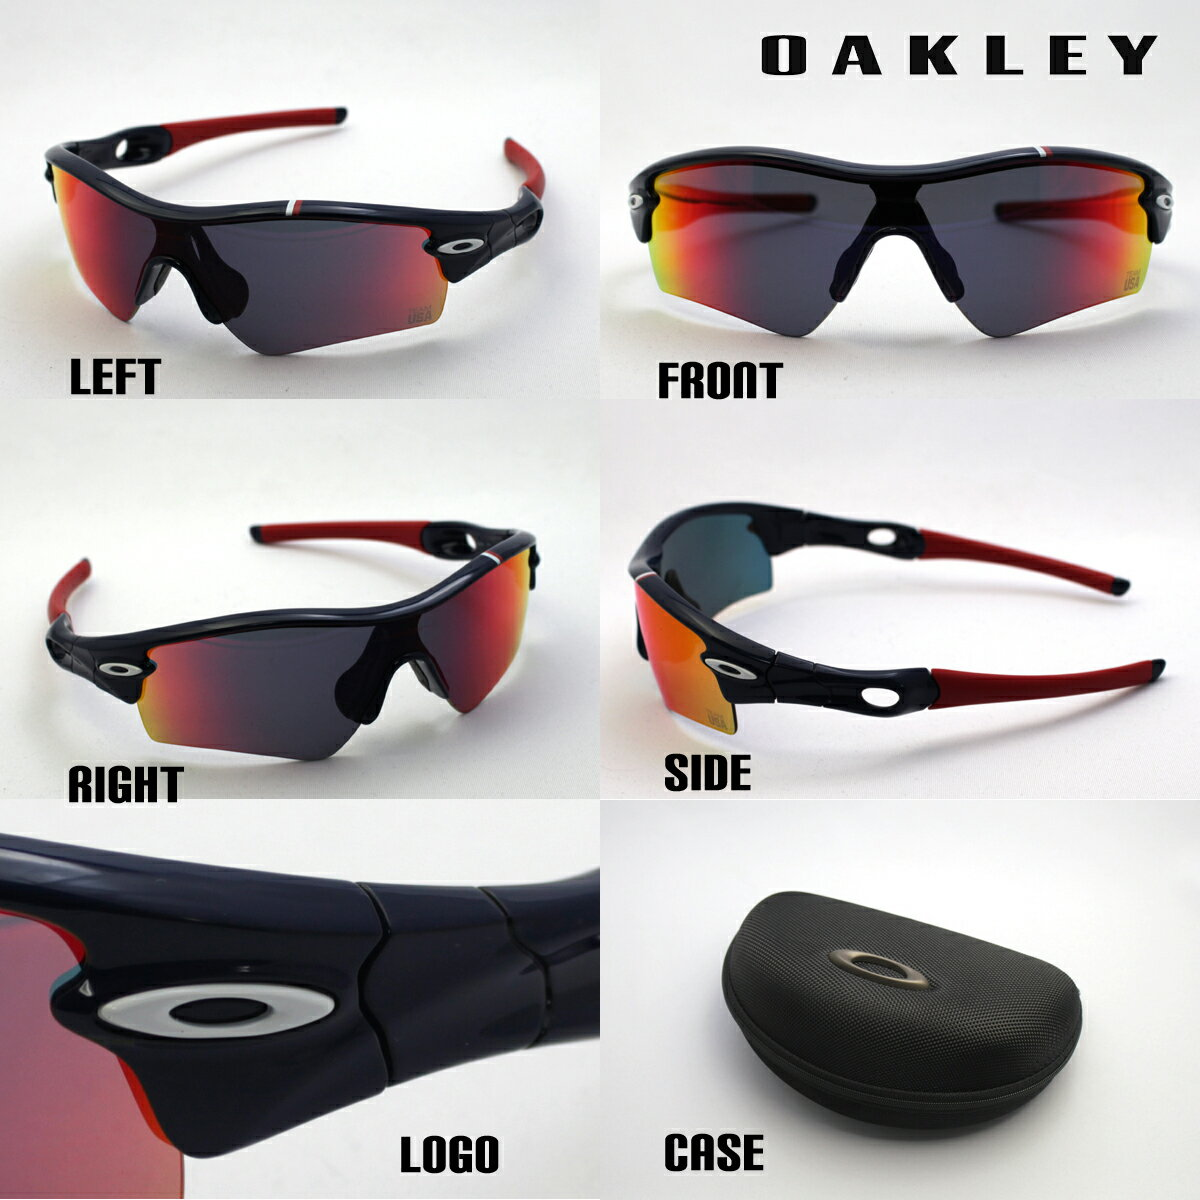 Oakleys Sunglasses Baseball  sunglasses baseball